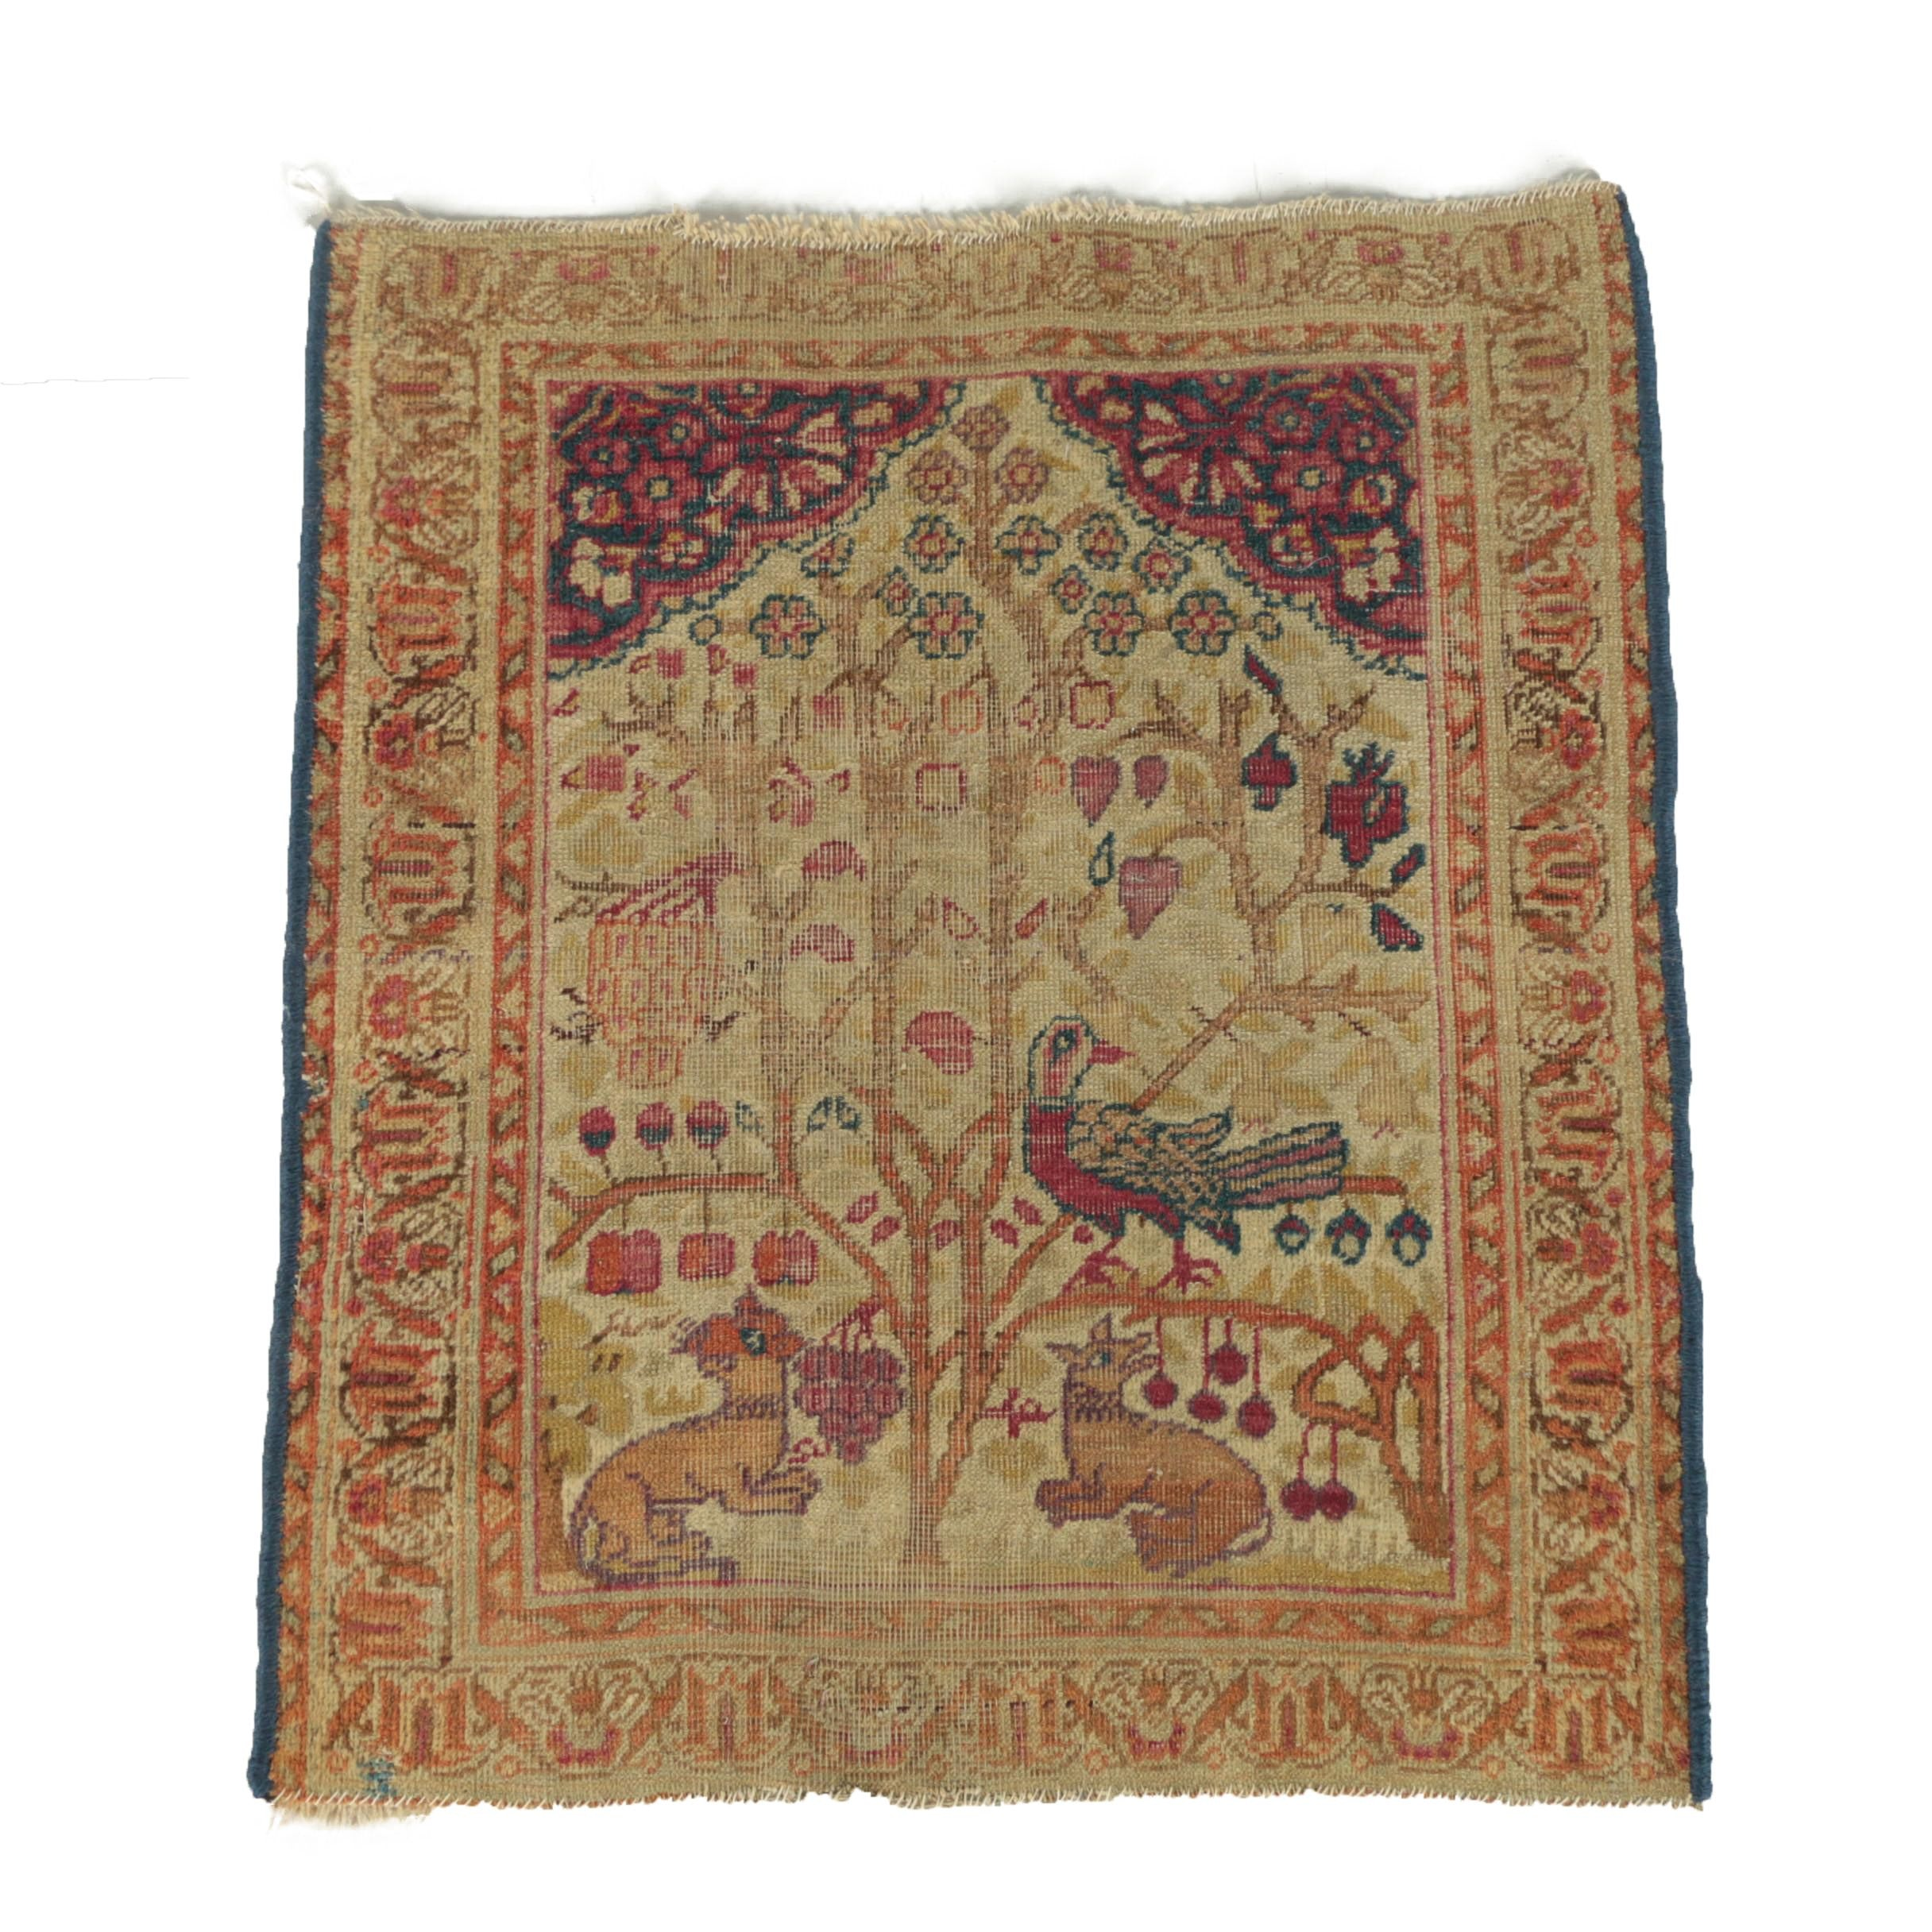 Antique Hand-Knotted Persian Pictorial Prayer Rug